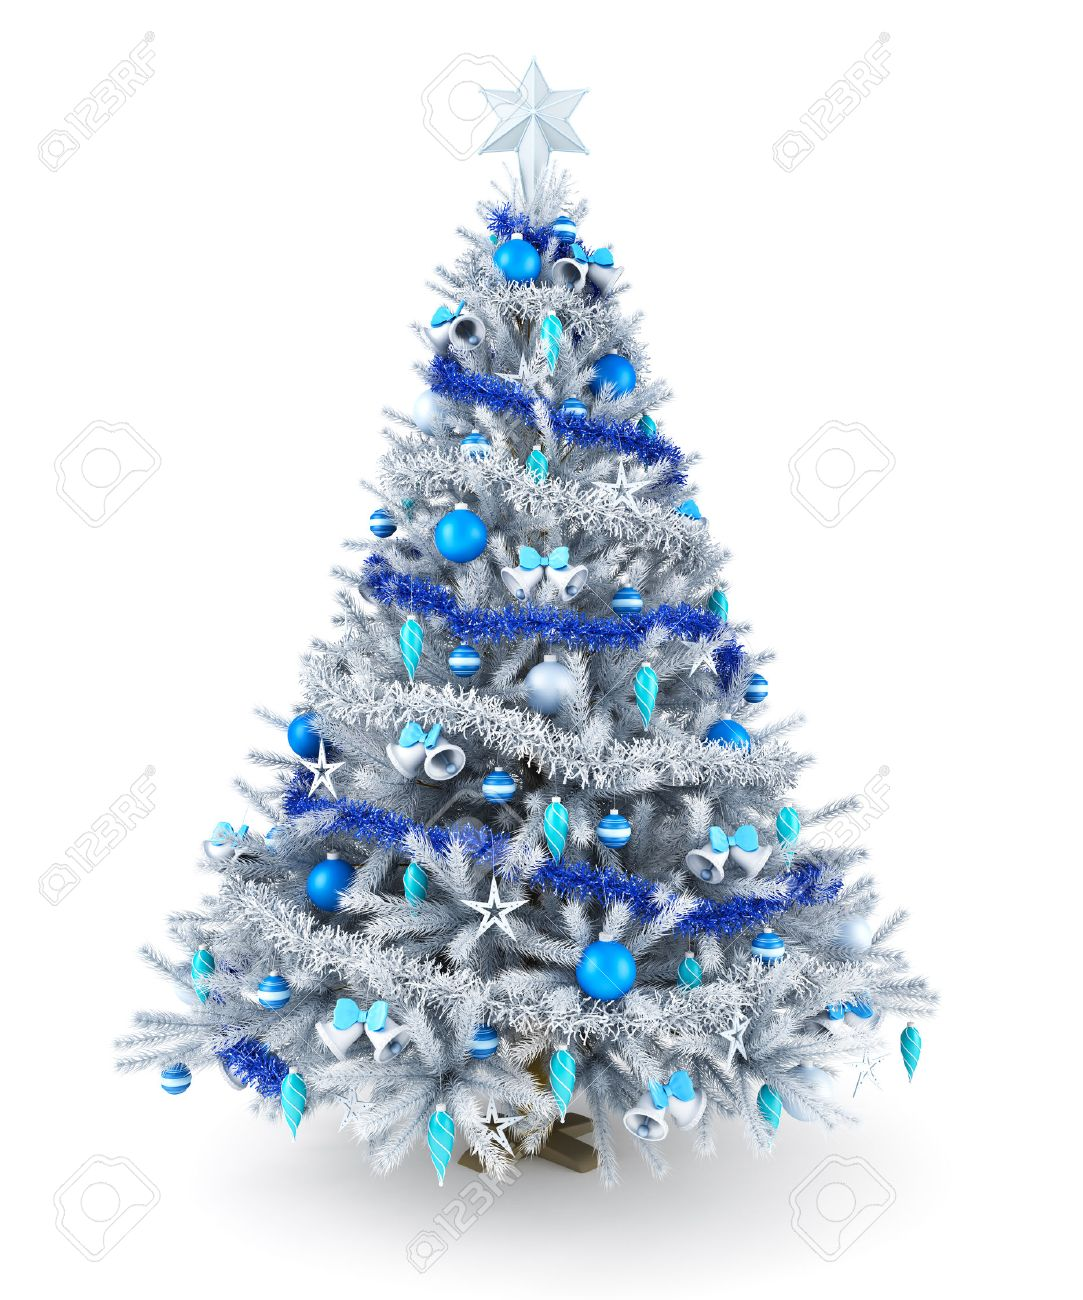 Blue christmas trees decorating ideas - Silver And Blue Christmas Tree Stock Photo 34064877